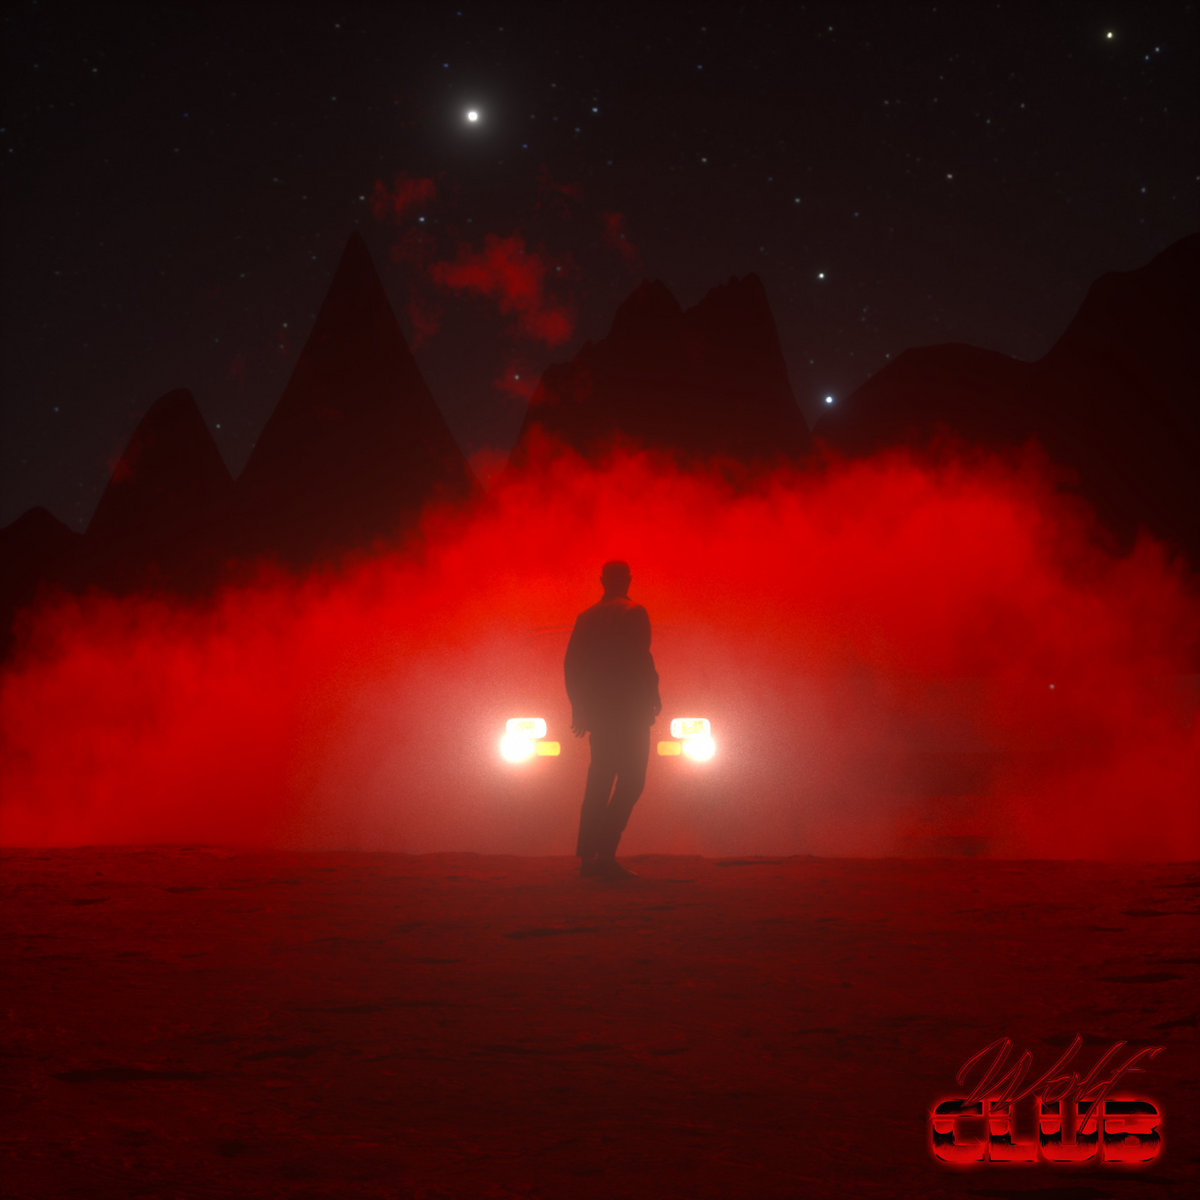 """a4161909240 10 - """"Just Drive Part 1"""" by W O L F C L U B - Official Album Review"""